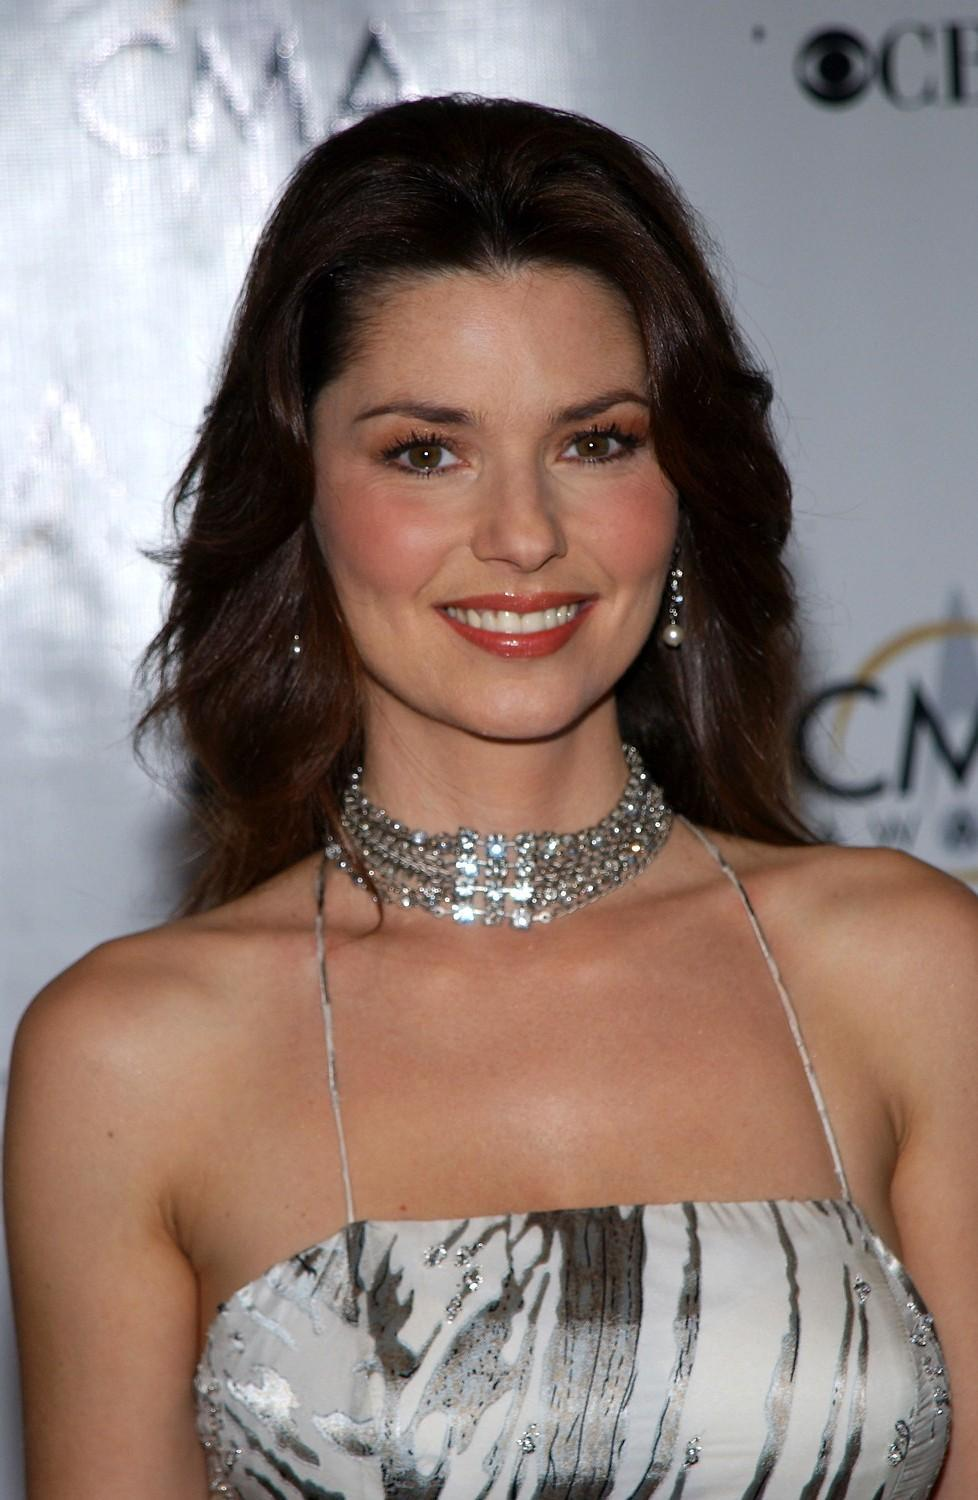 Shania Twain hot hd wallpapers   HIGH RESOLUTION PICTURES